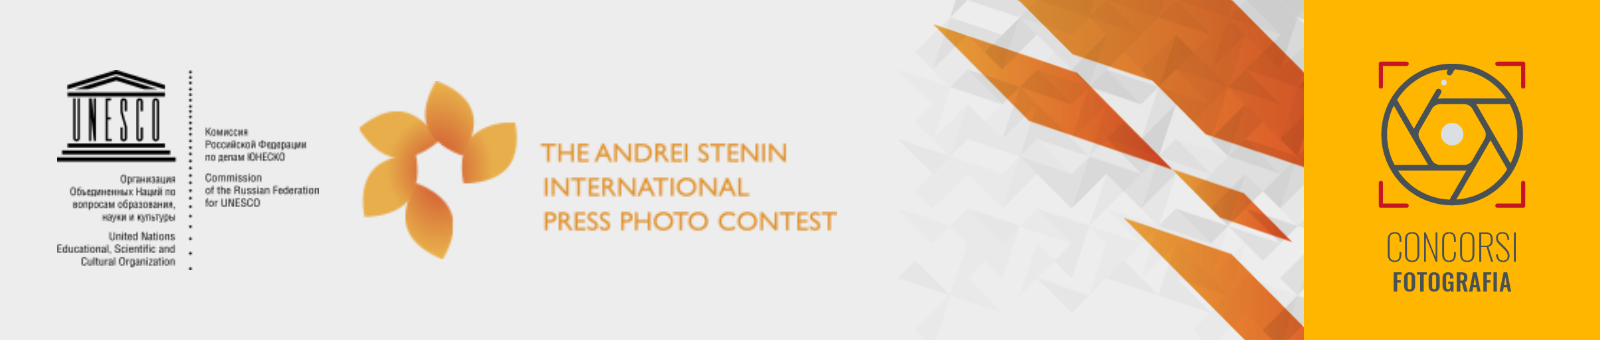 THE ANDREI STENIN INTERNATIONAL PRESS PHOTO CONTEST 2021